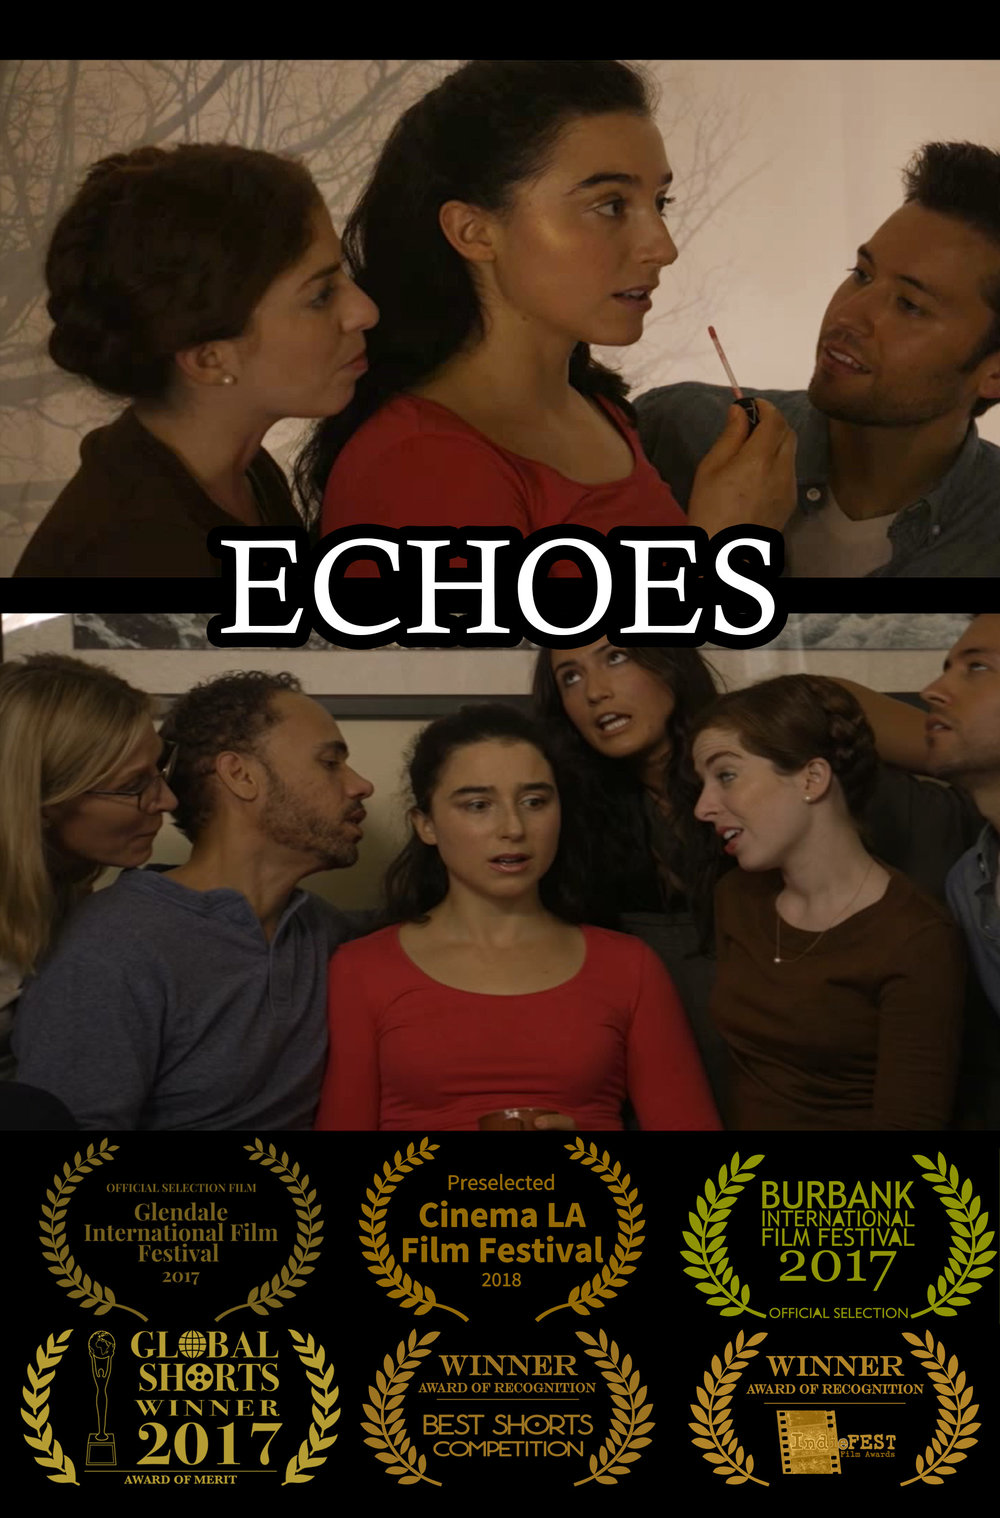 Echoes - Our first film, Echoes, tells the story of a young woman who struggles with meeting the expectations of others and being her own person.